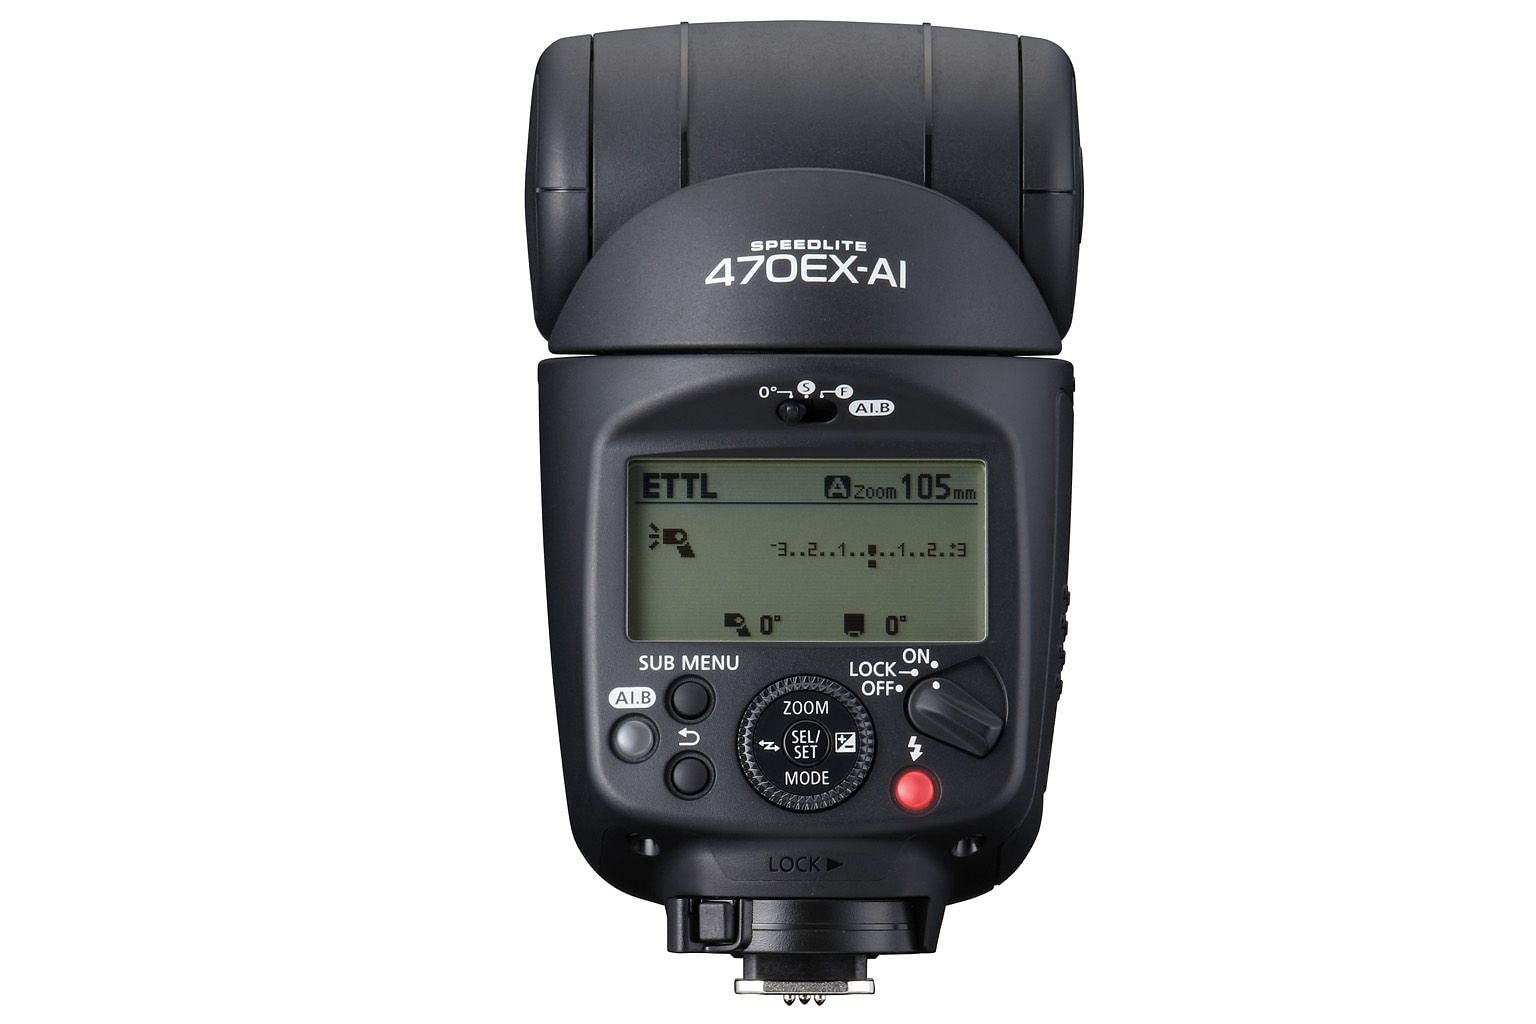 The Canon Speedlite 470EX-AI is great for beginners who may not be well-versed in flash photography.